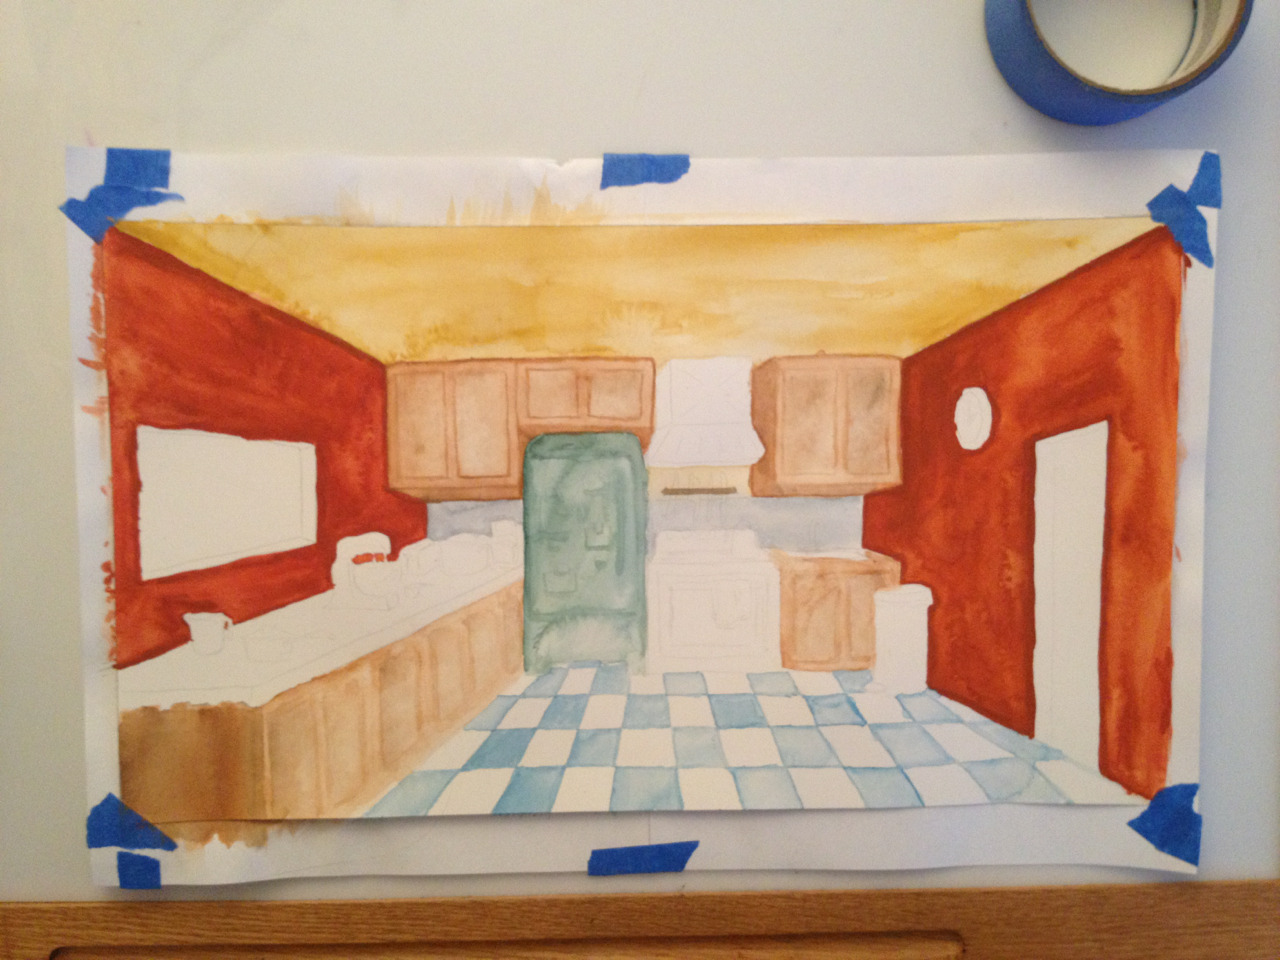 The kitchen level so far.